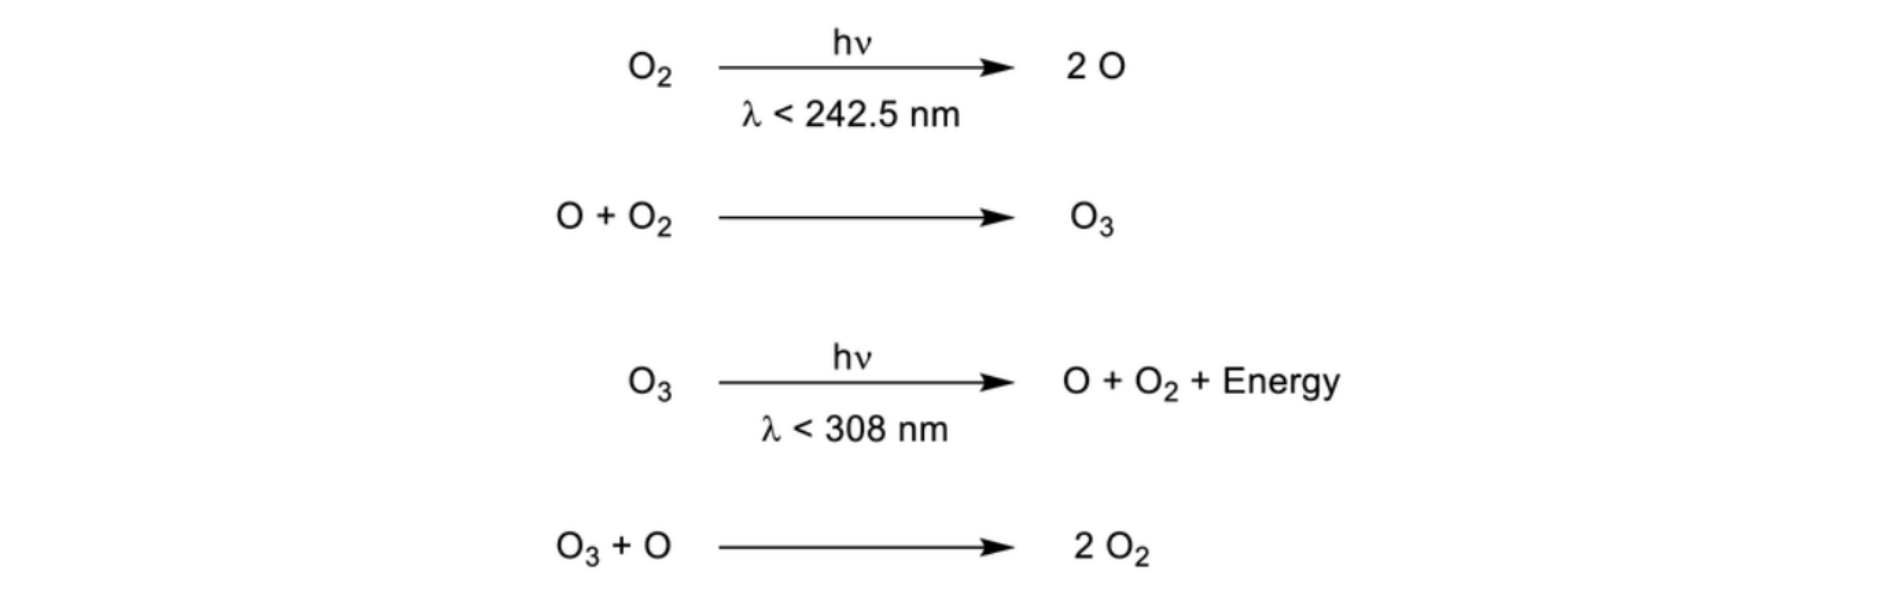 Figure 2.  The Chapman Cycle. (6) Ozone is both formed and destroyed via various reactions in the stratosphere that involve oxygen. The dissociation of ozone (O3) into O2 and O is responsible for most of ozone's UV absorption.